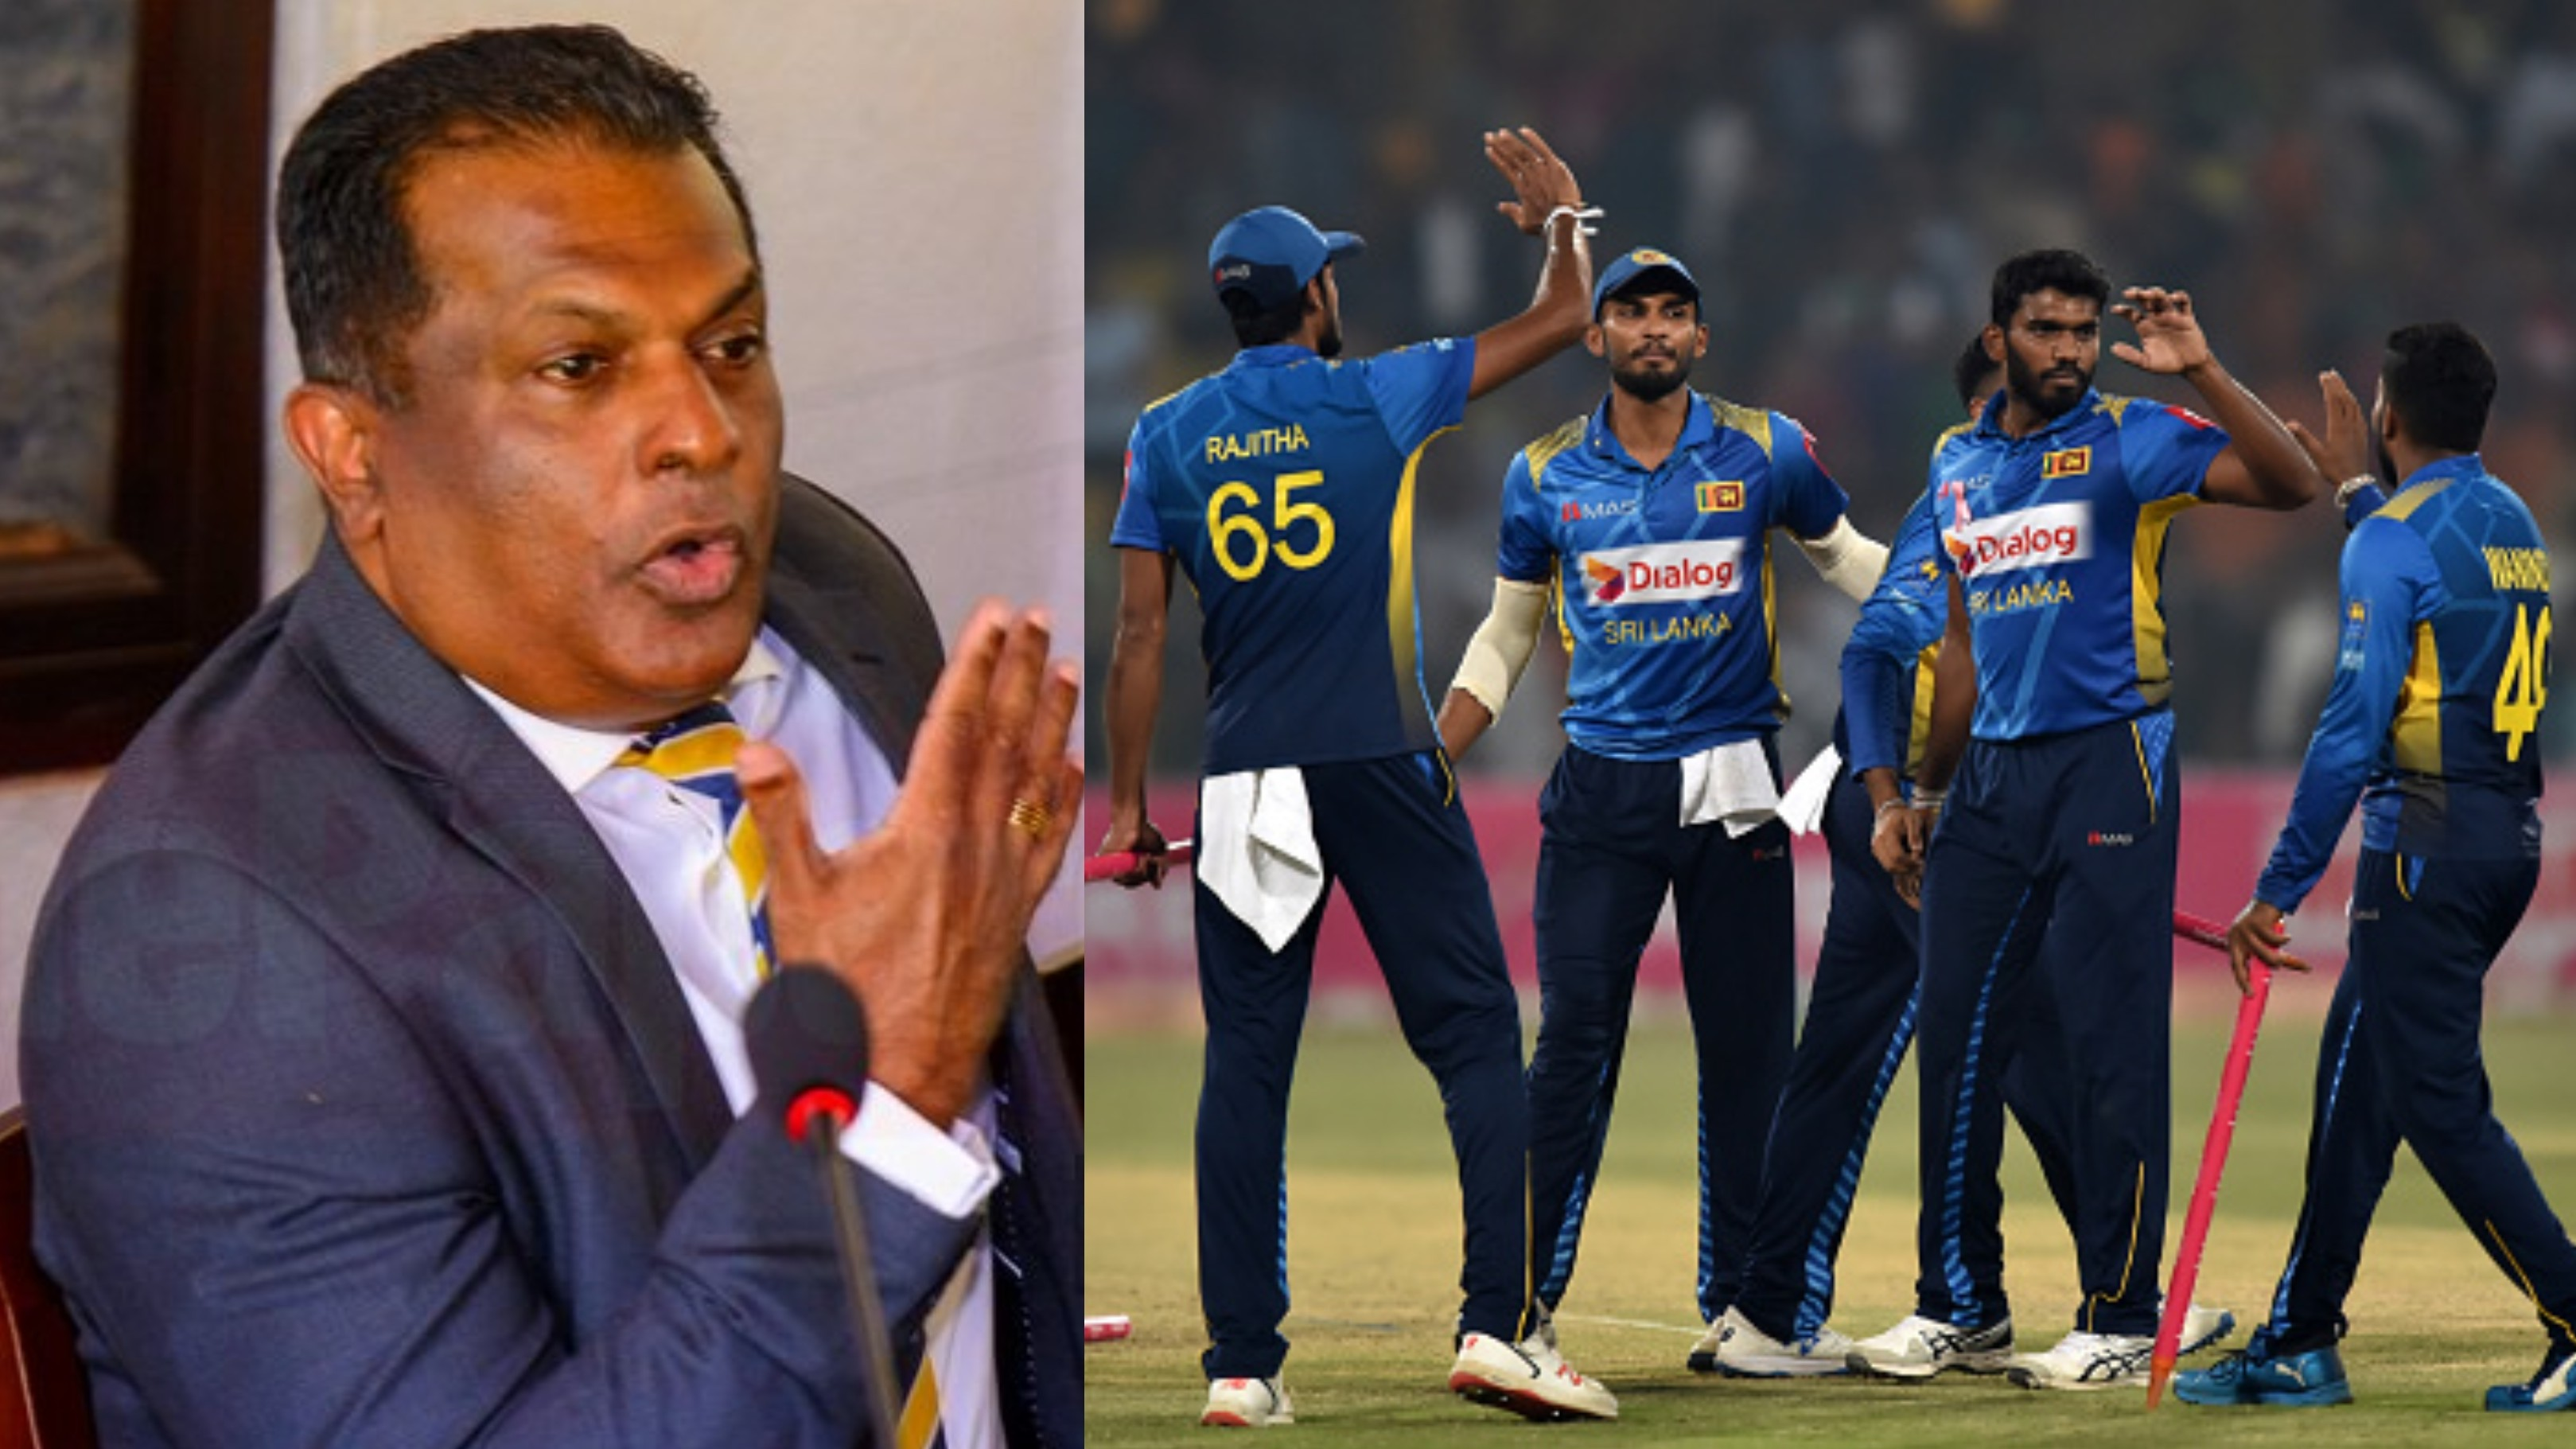 Sri Lankan players were fed up with stringent security arrangements in Pakistan, says SLC President